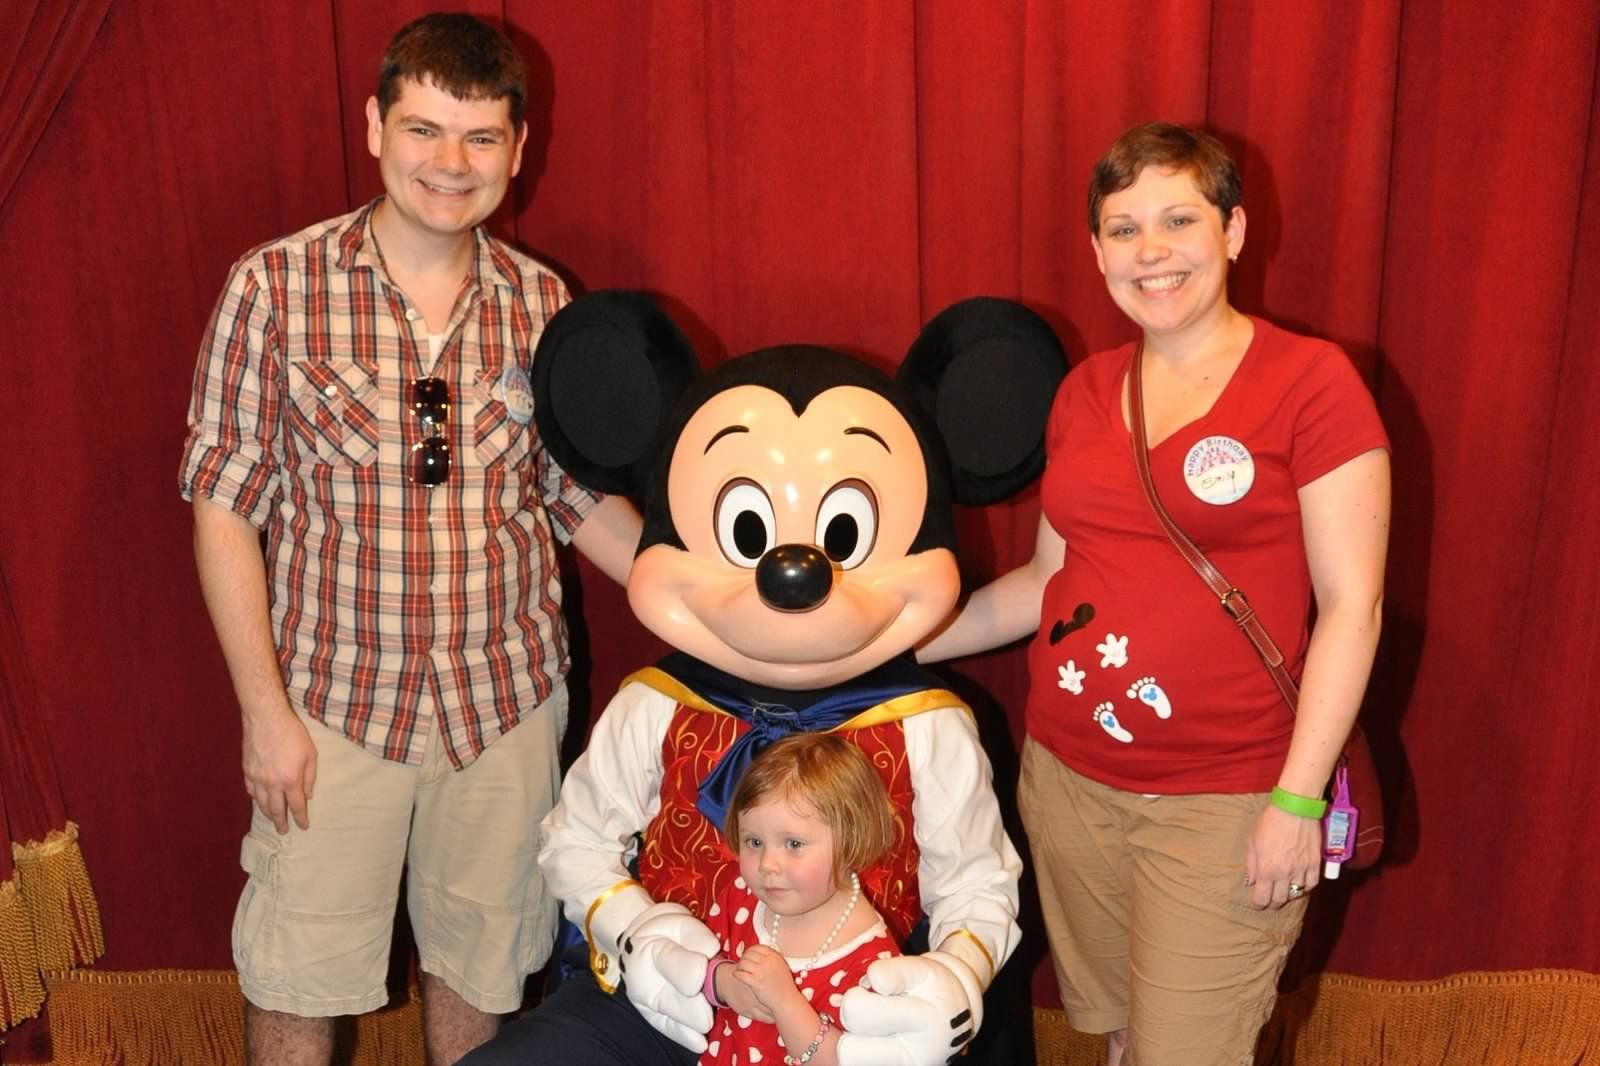 Learn about visiting Walt Disney World while pregnant | PassPorter.com